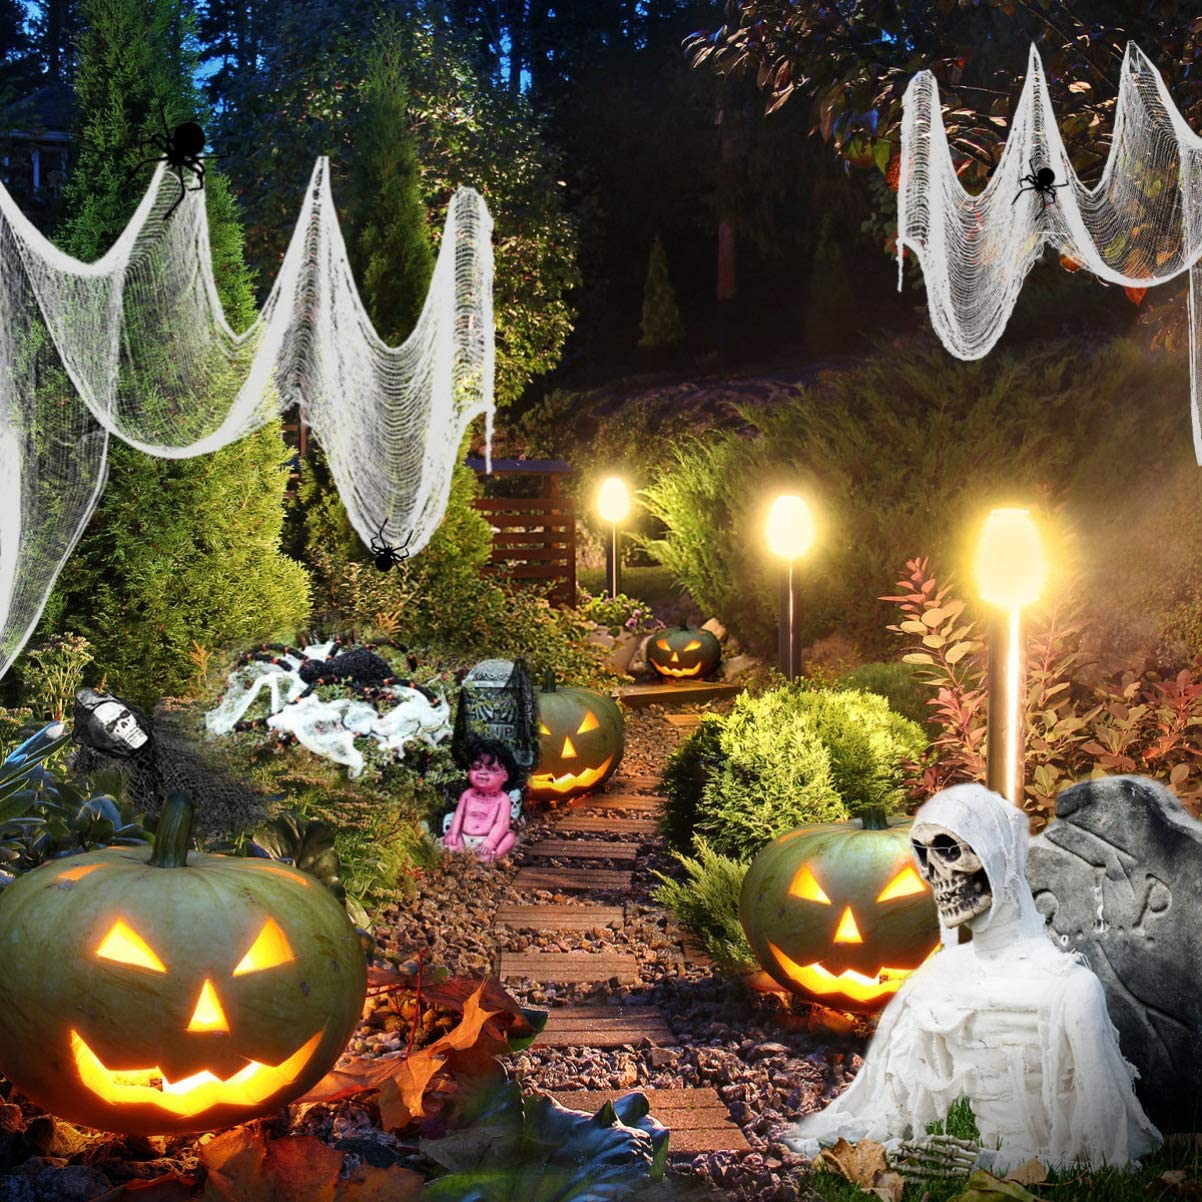 Halloween Creepy Cloth Spooky Halloween Decorations Outdoor Party Supplies for House Doorways Windows (White)